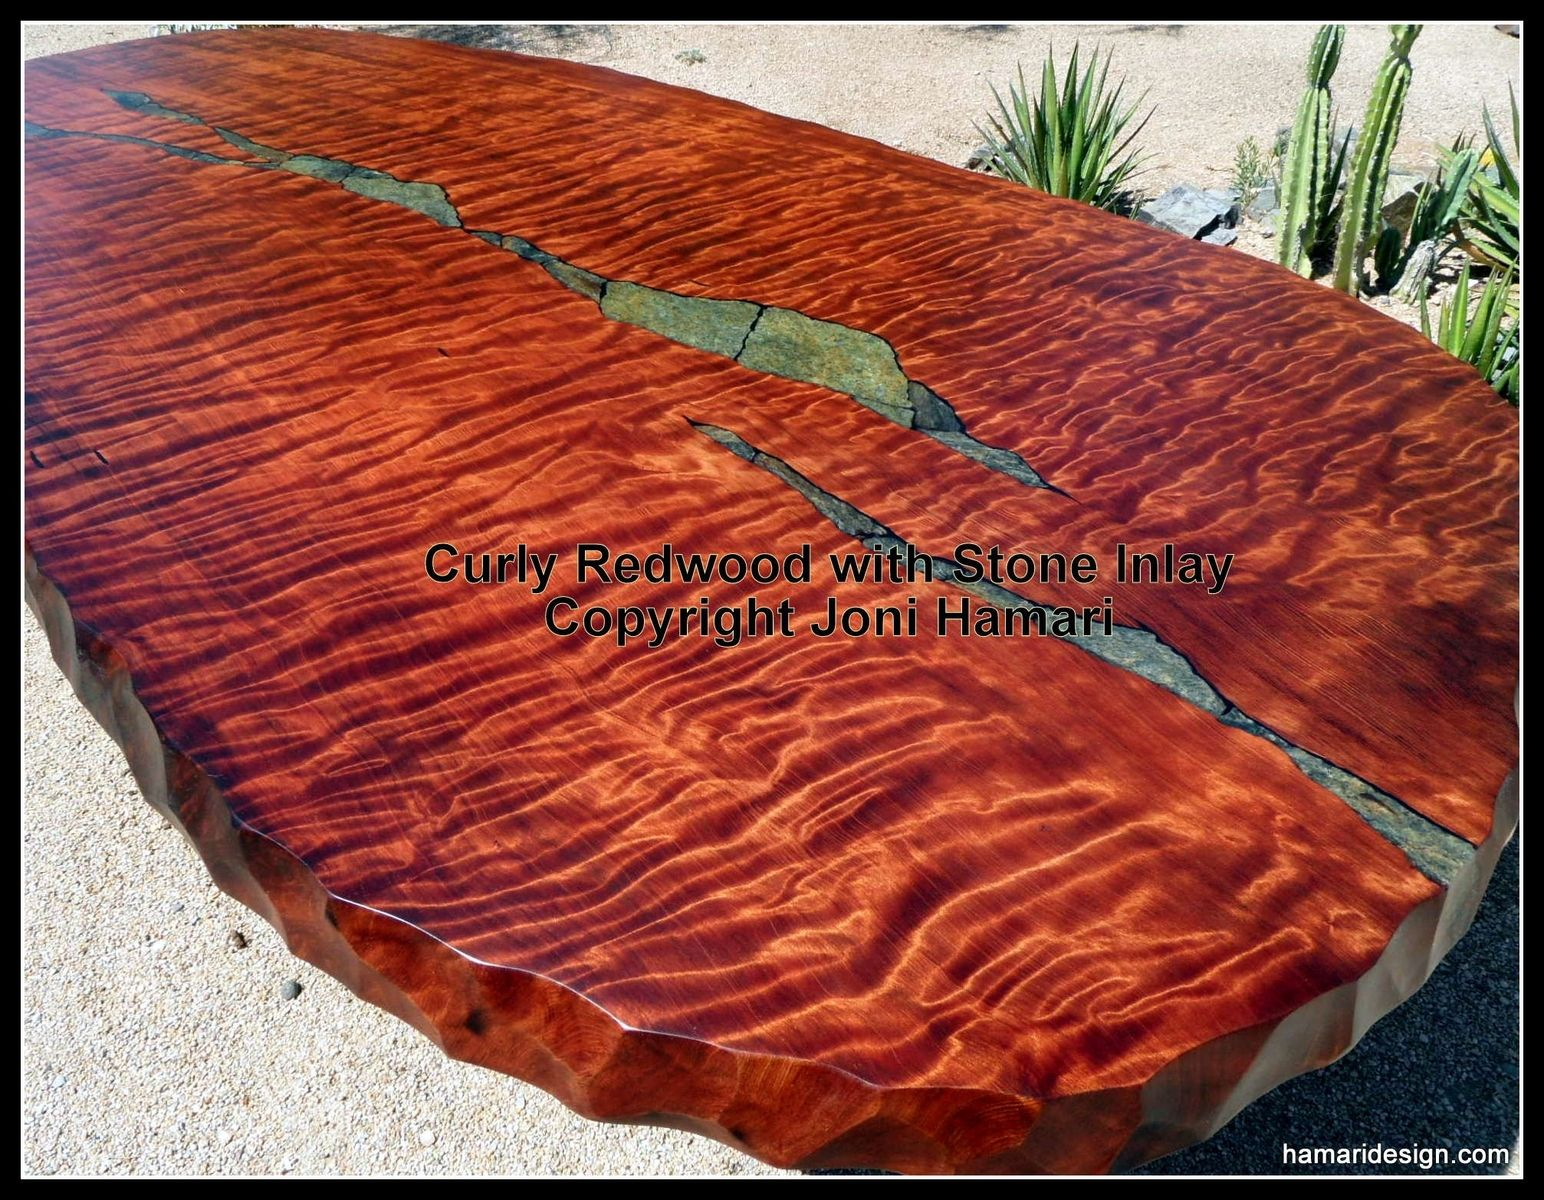 Redwood Slab Dining Table Hand Crafted Live Edge Wood Slab Curly Redwood Dining Table With